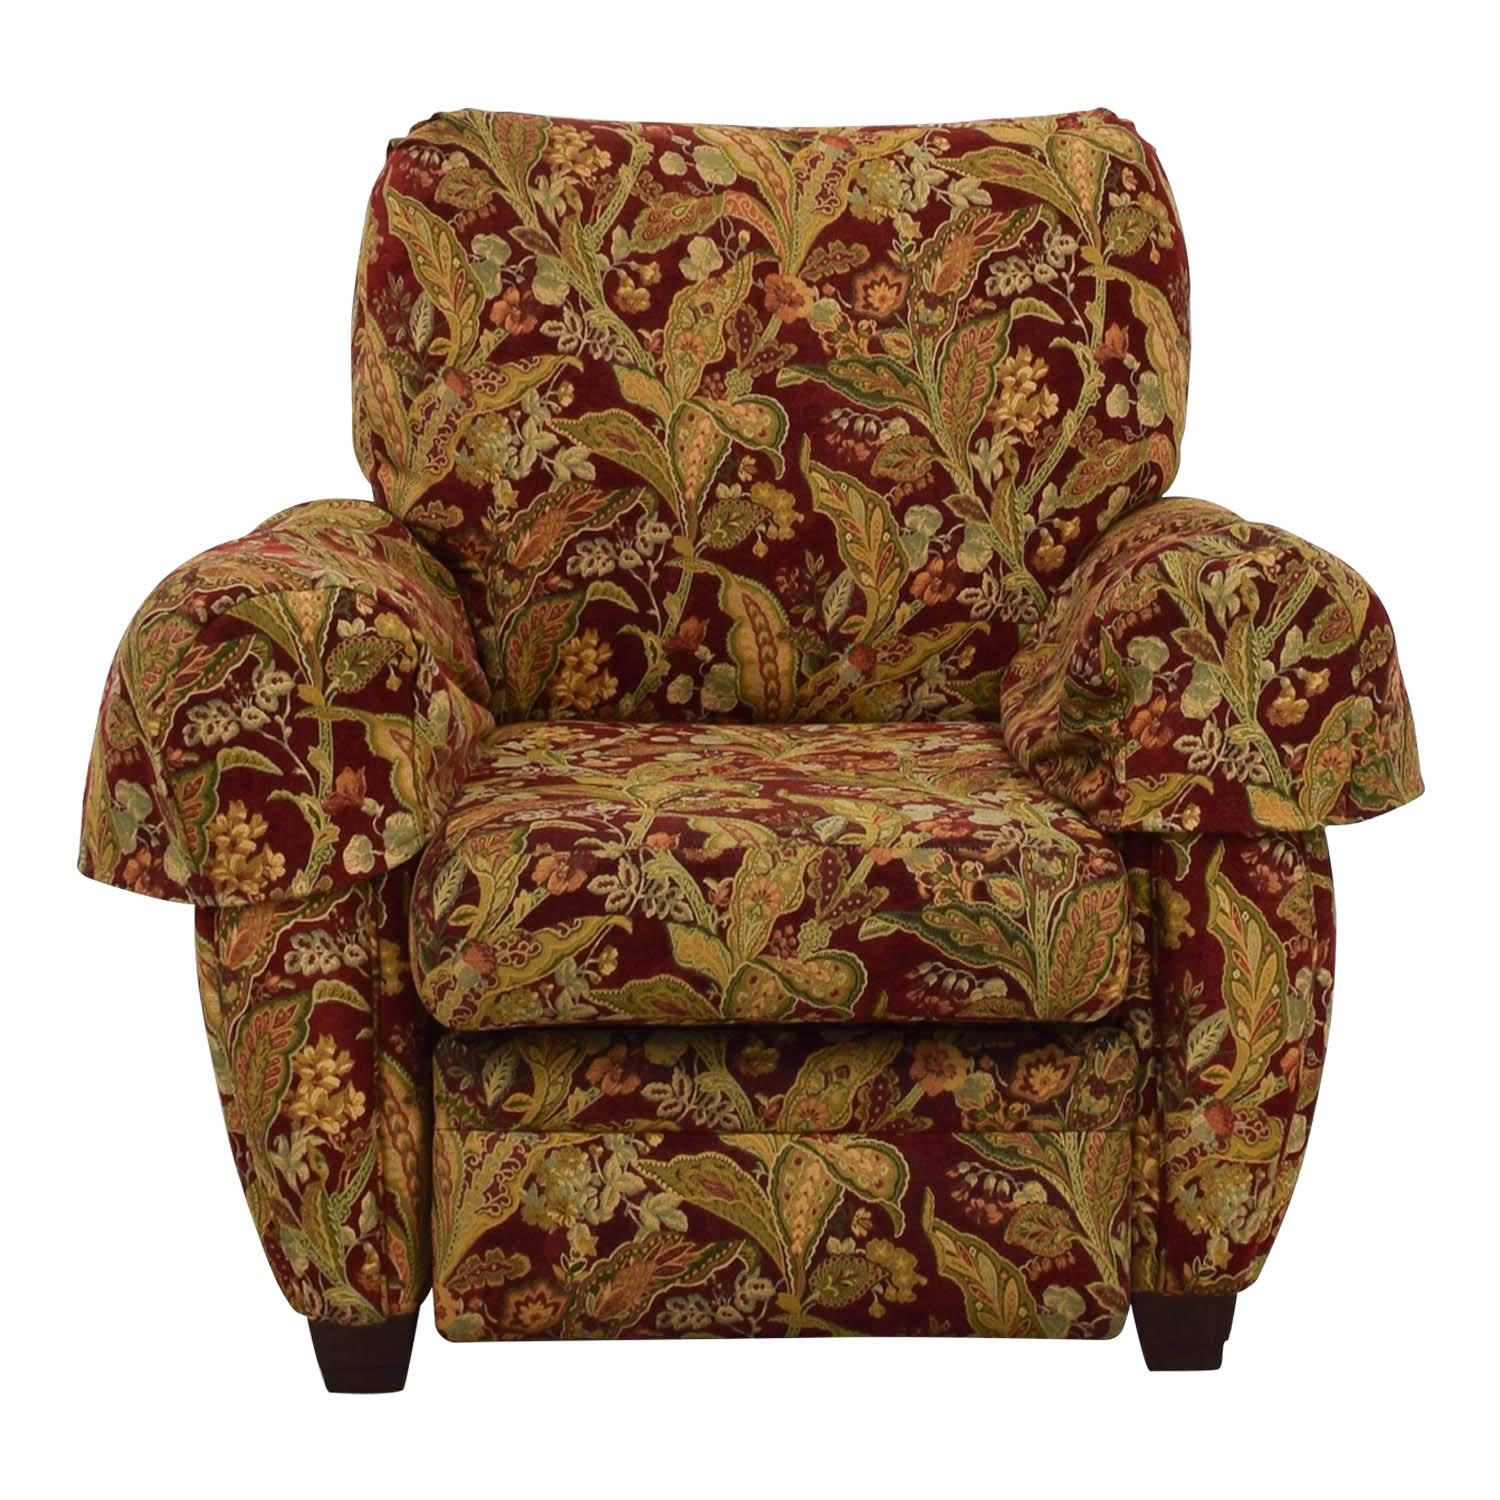 Lazy Boy Lazy Boy Burgundy Floral Recliner nj